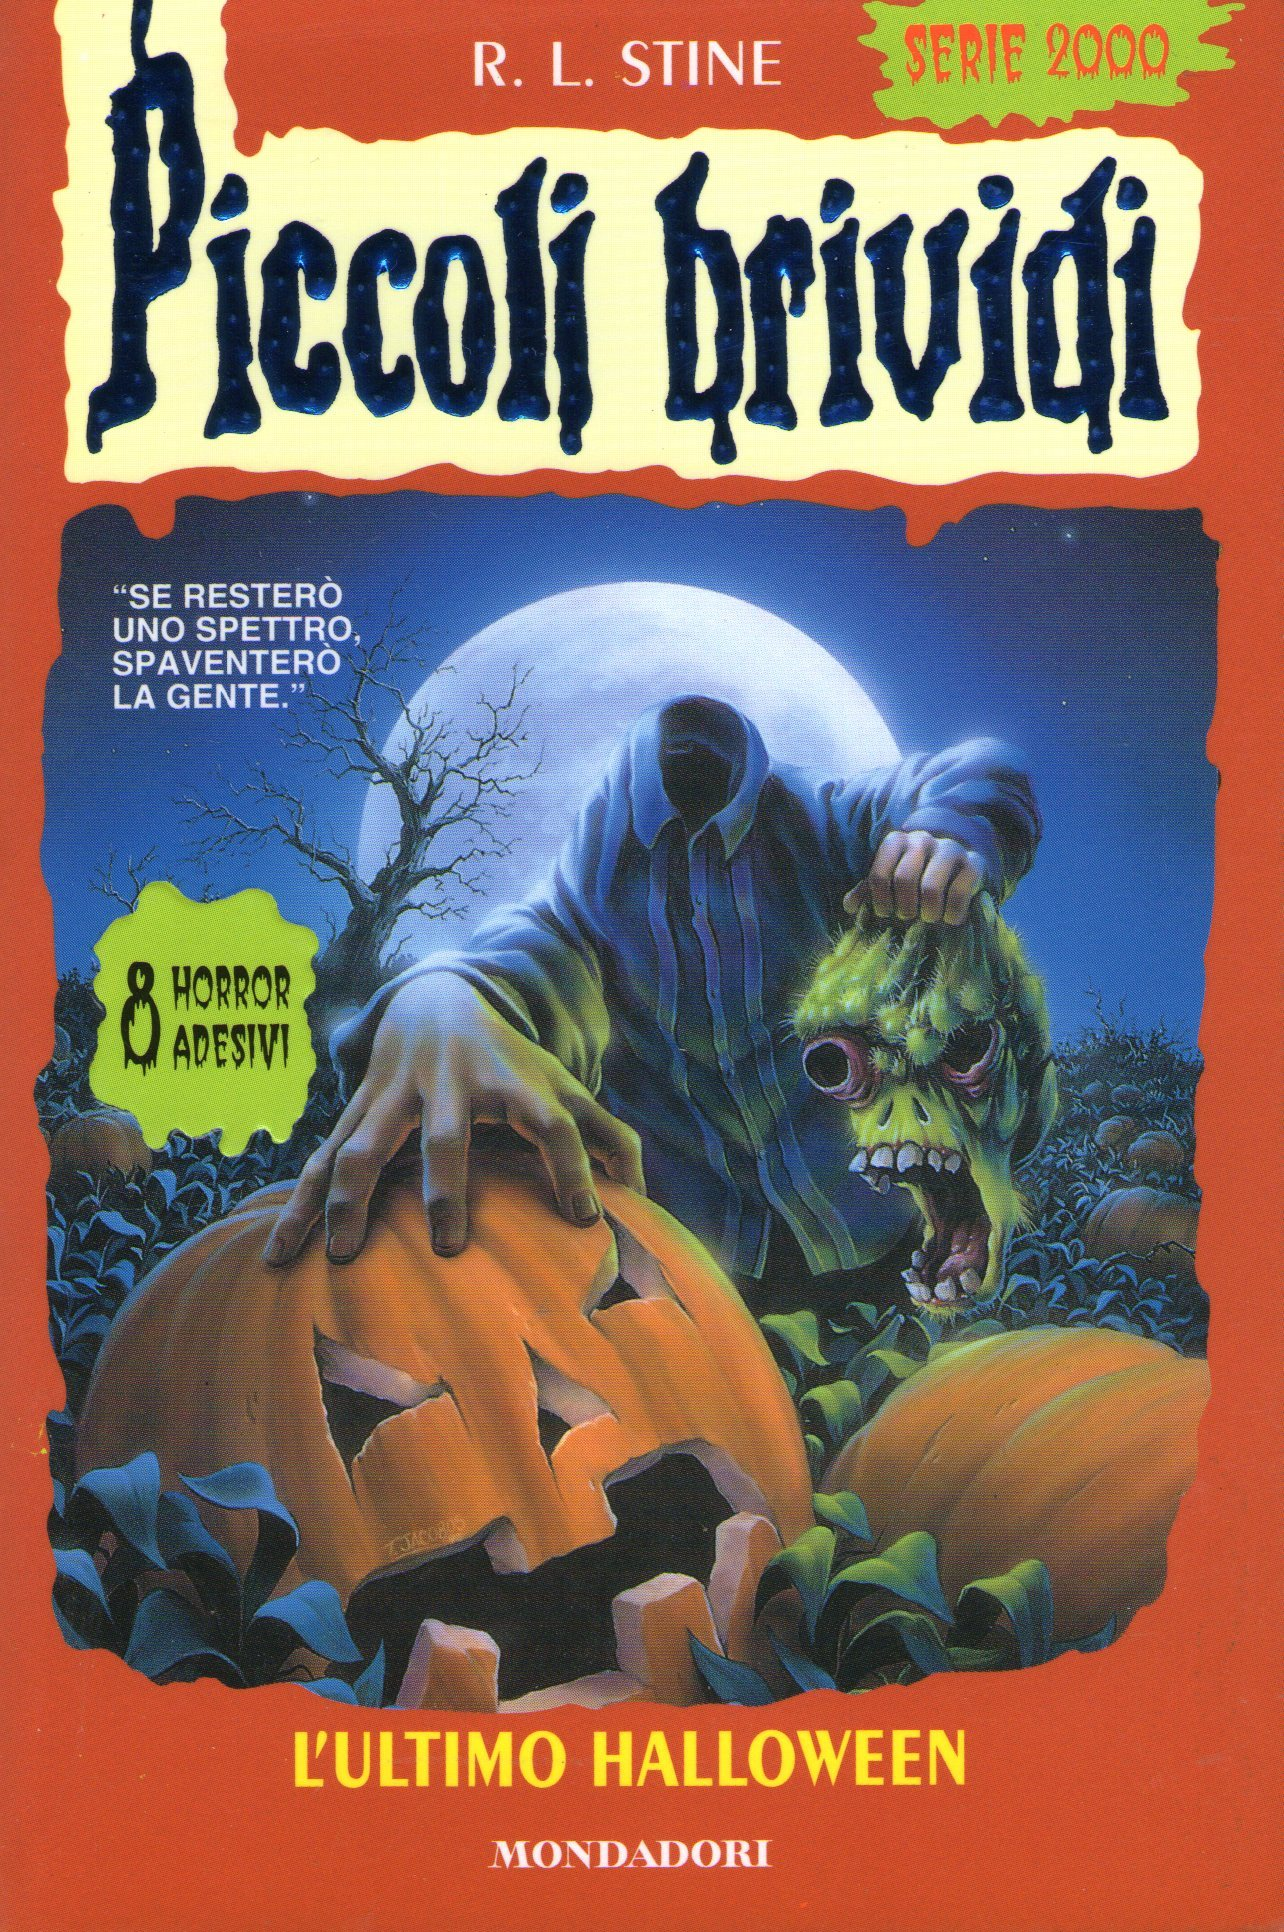 Lultimo Halloween R.L. Stine